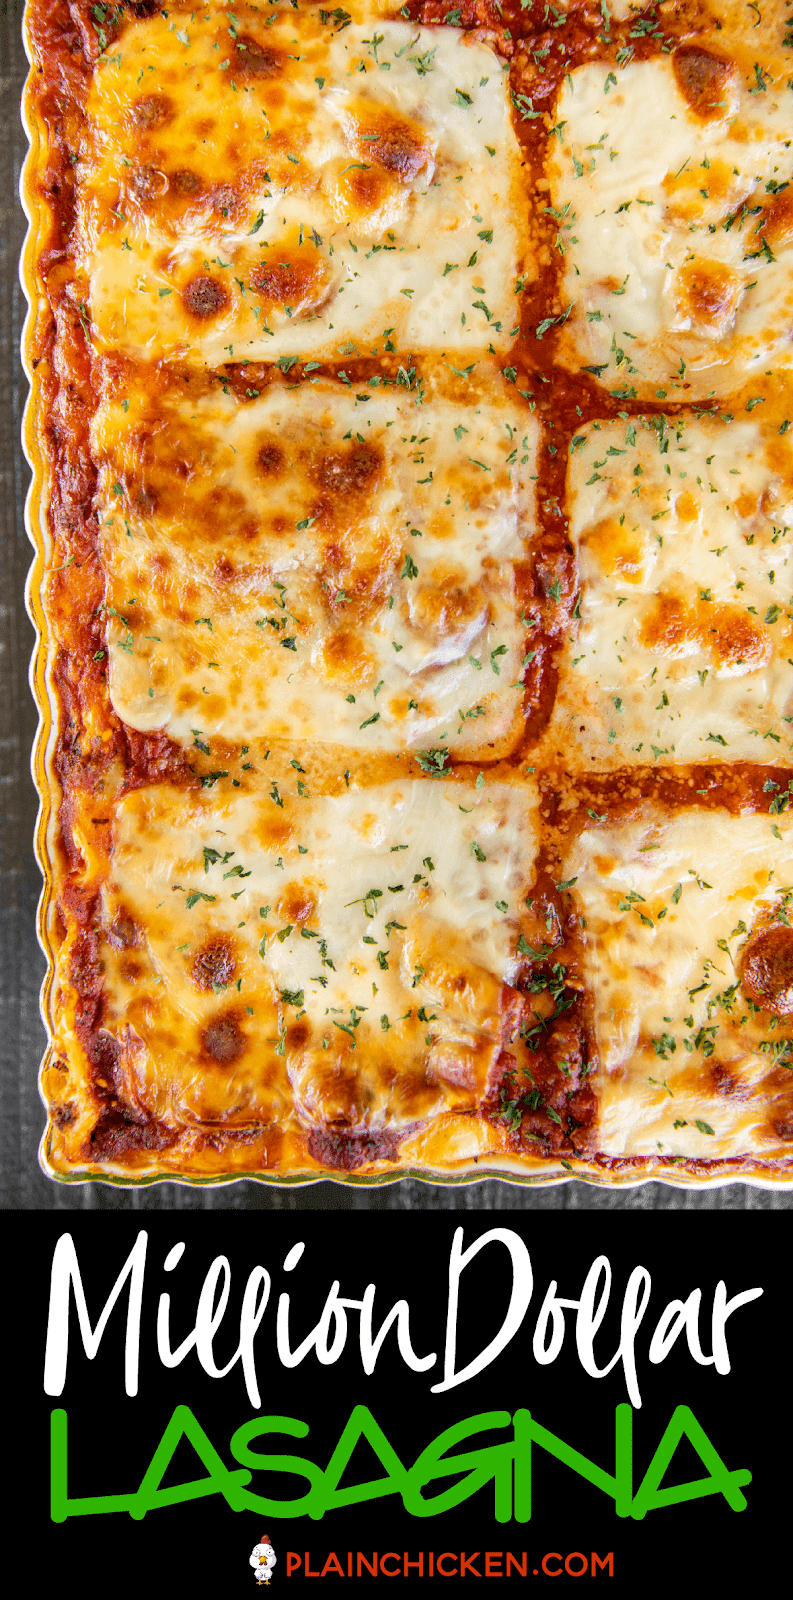 This Million Dollar Lasagna Is Seriously The Best Lasagna We Ve Ever Eaten So Easy To Make And Tastes Like A Million Bucks Lasagna Noodles Cottage C In 2020 Lasagna